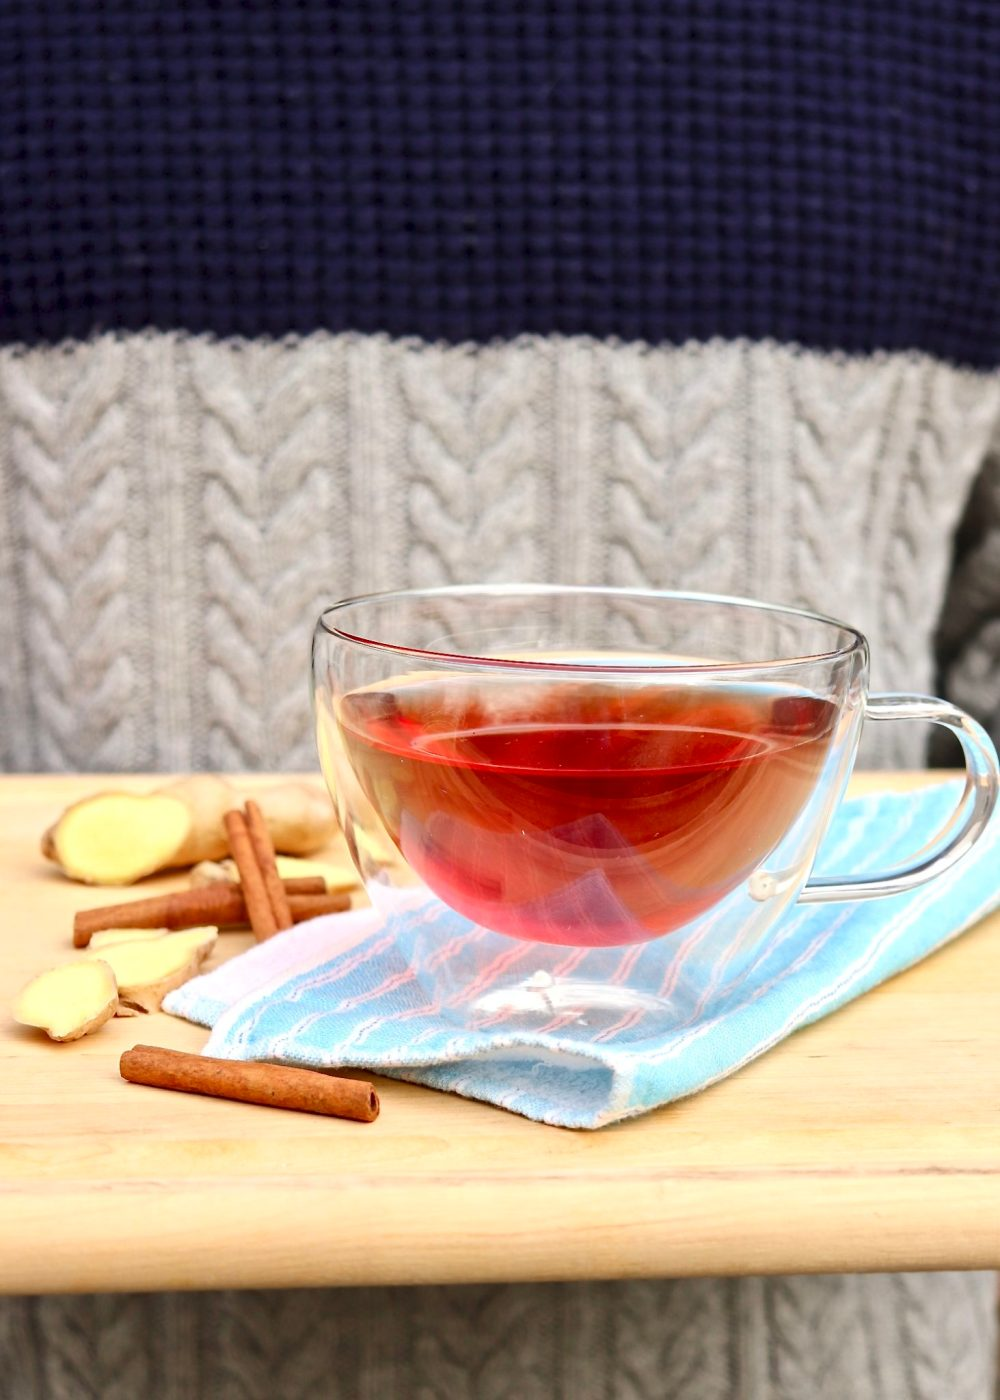 Healing Ginger Tea -Simmer a potful of this delicious elixir at the first sign of a sore throat or stomach woes. Soothing,therapeutic,and 100%caffeine-free.